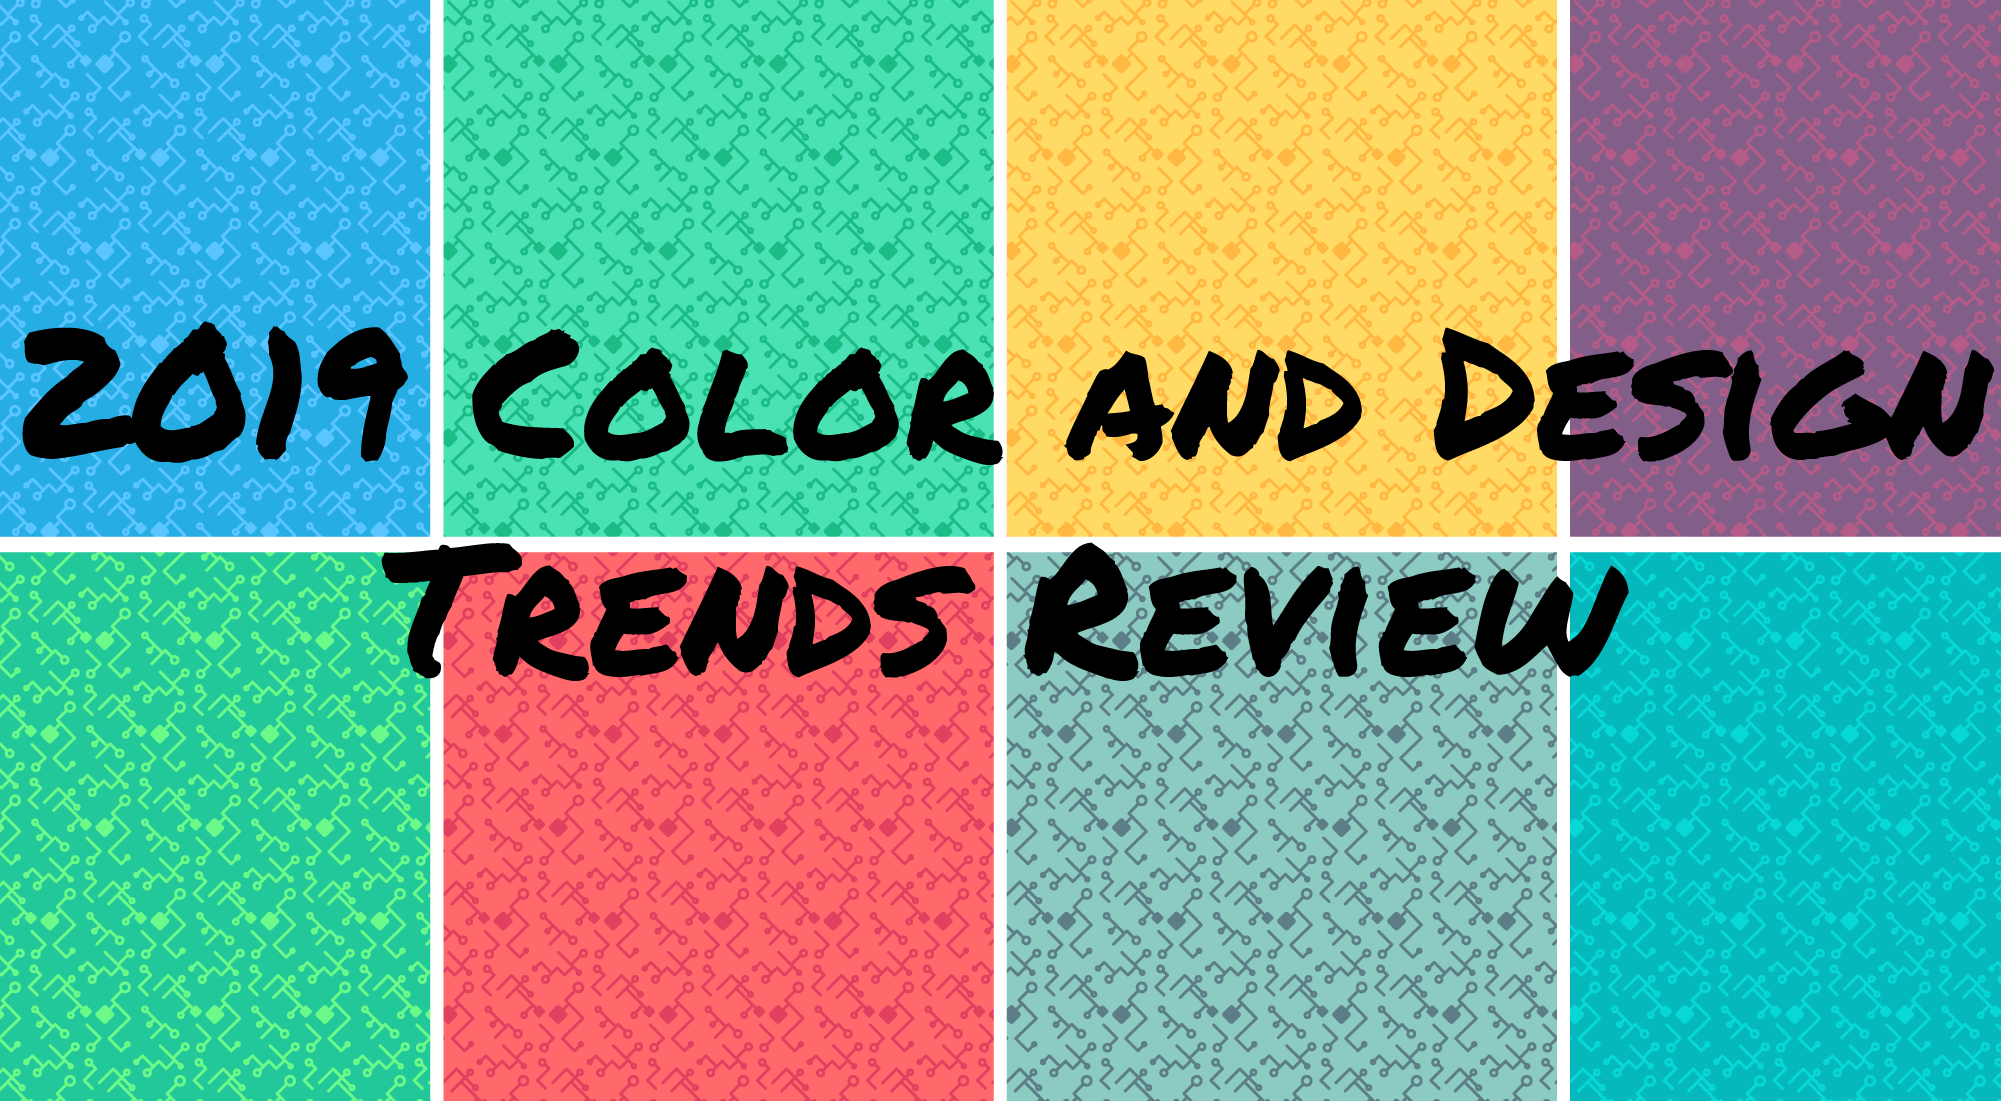 8 color panels with 2019 color and design trends review overlaid